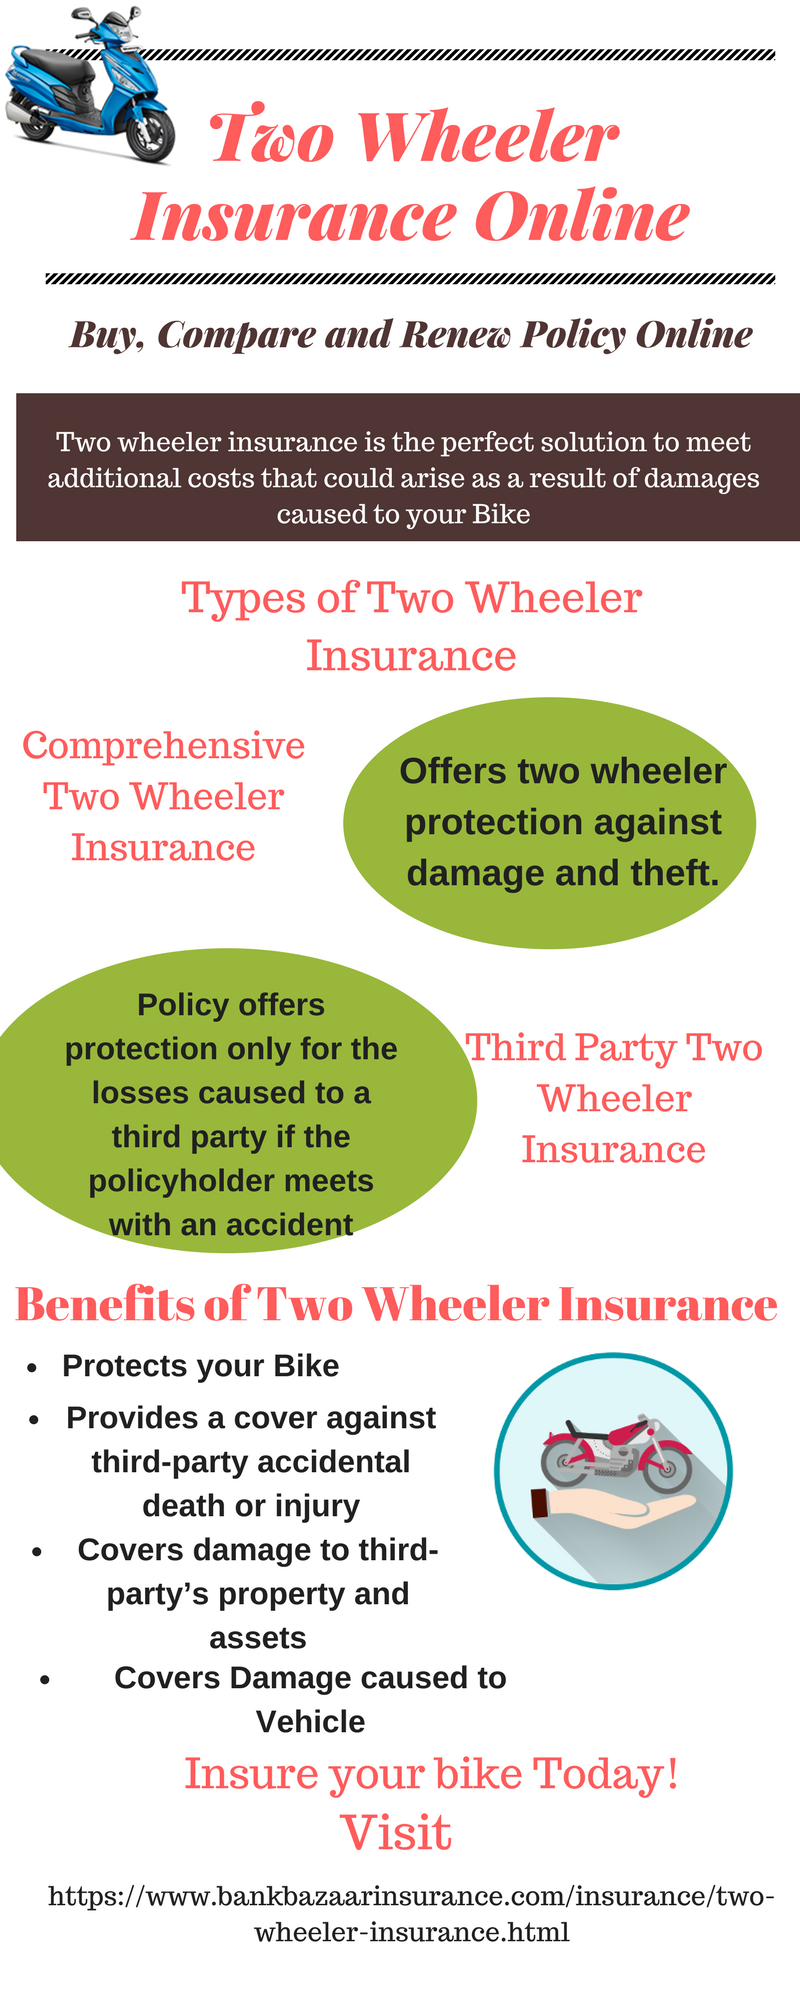 Insure You Bike Today With Bank Bazaar Two Wheeler Insurance And